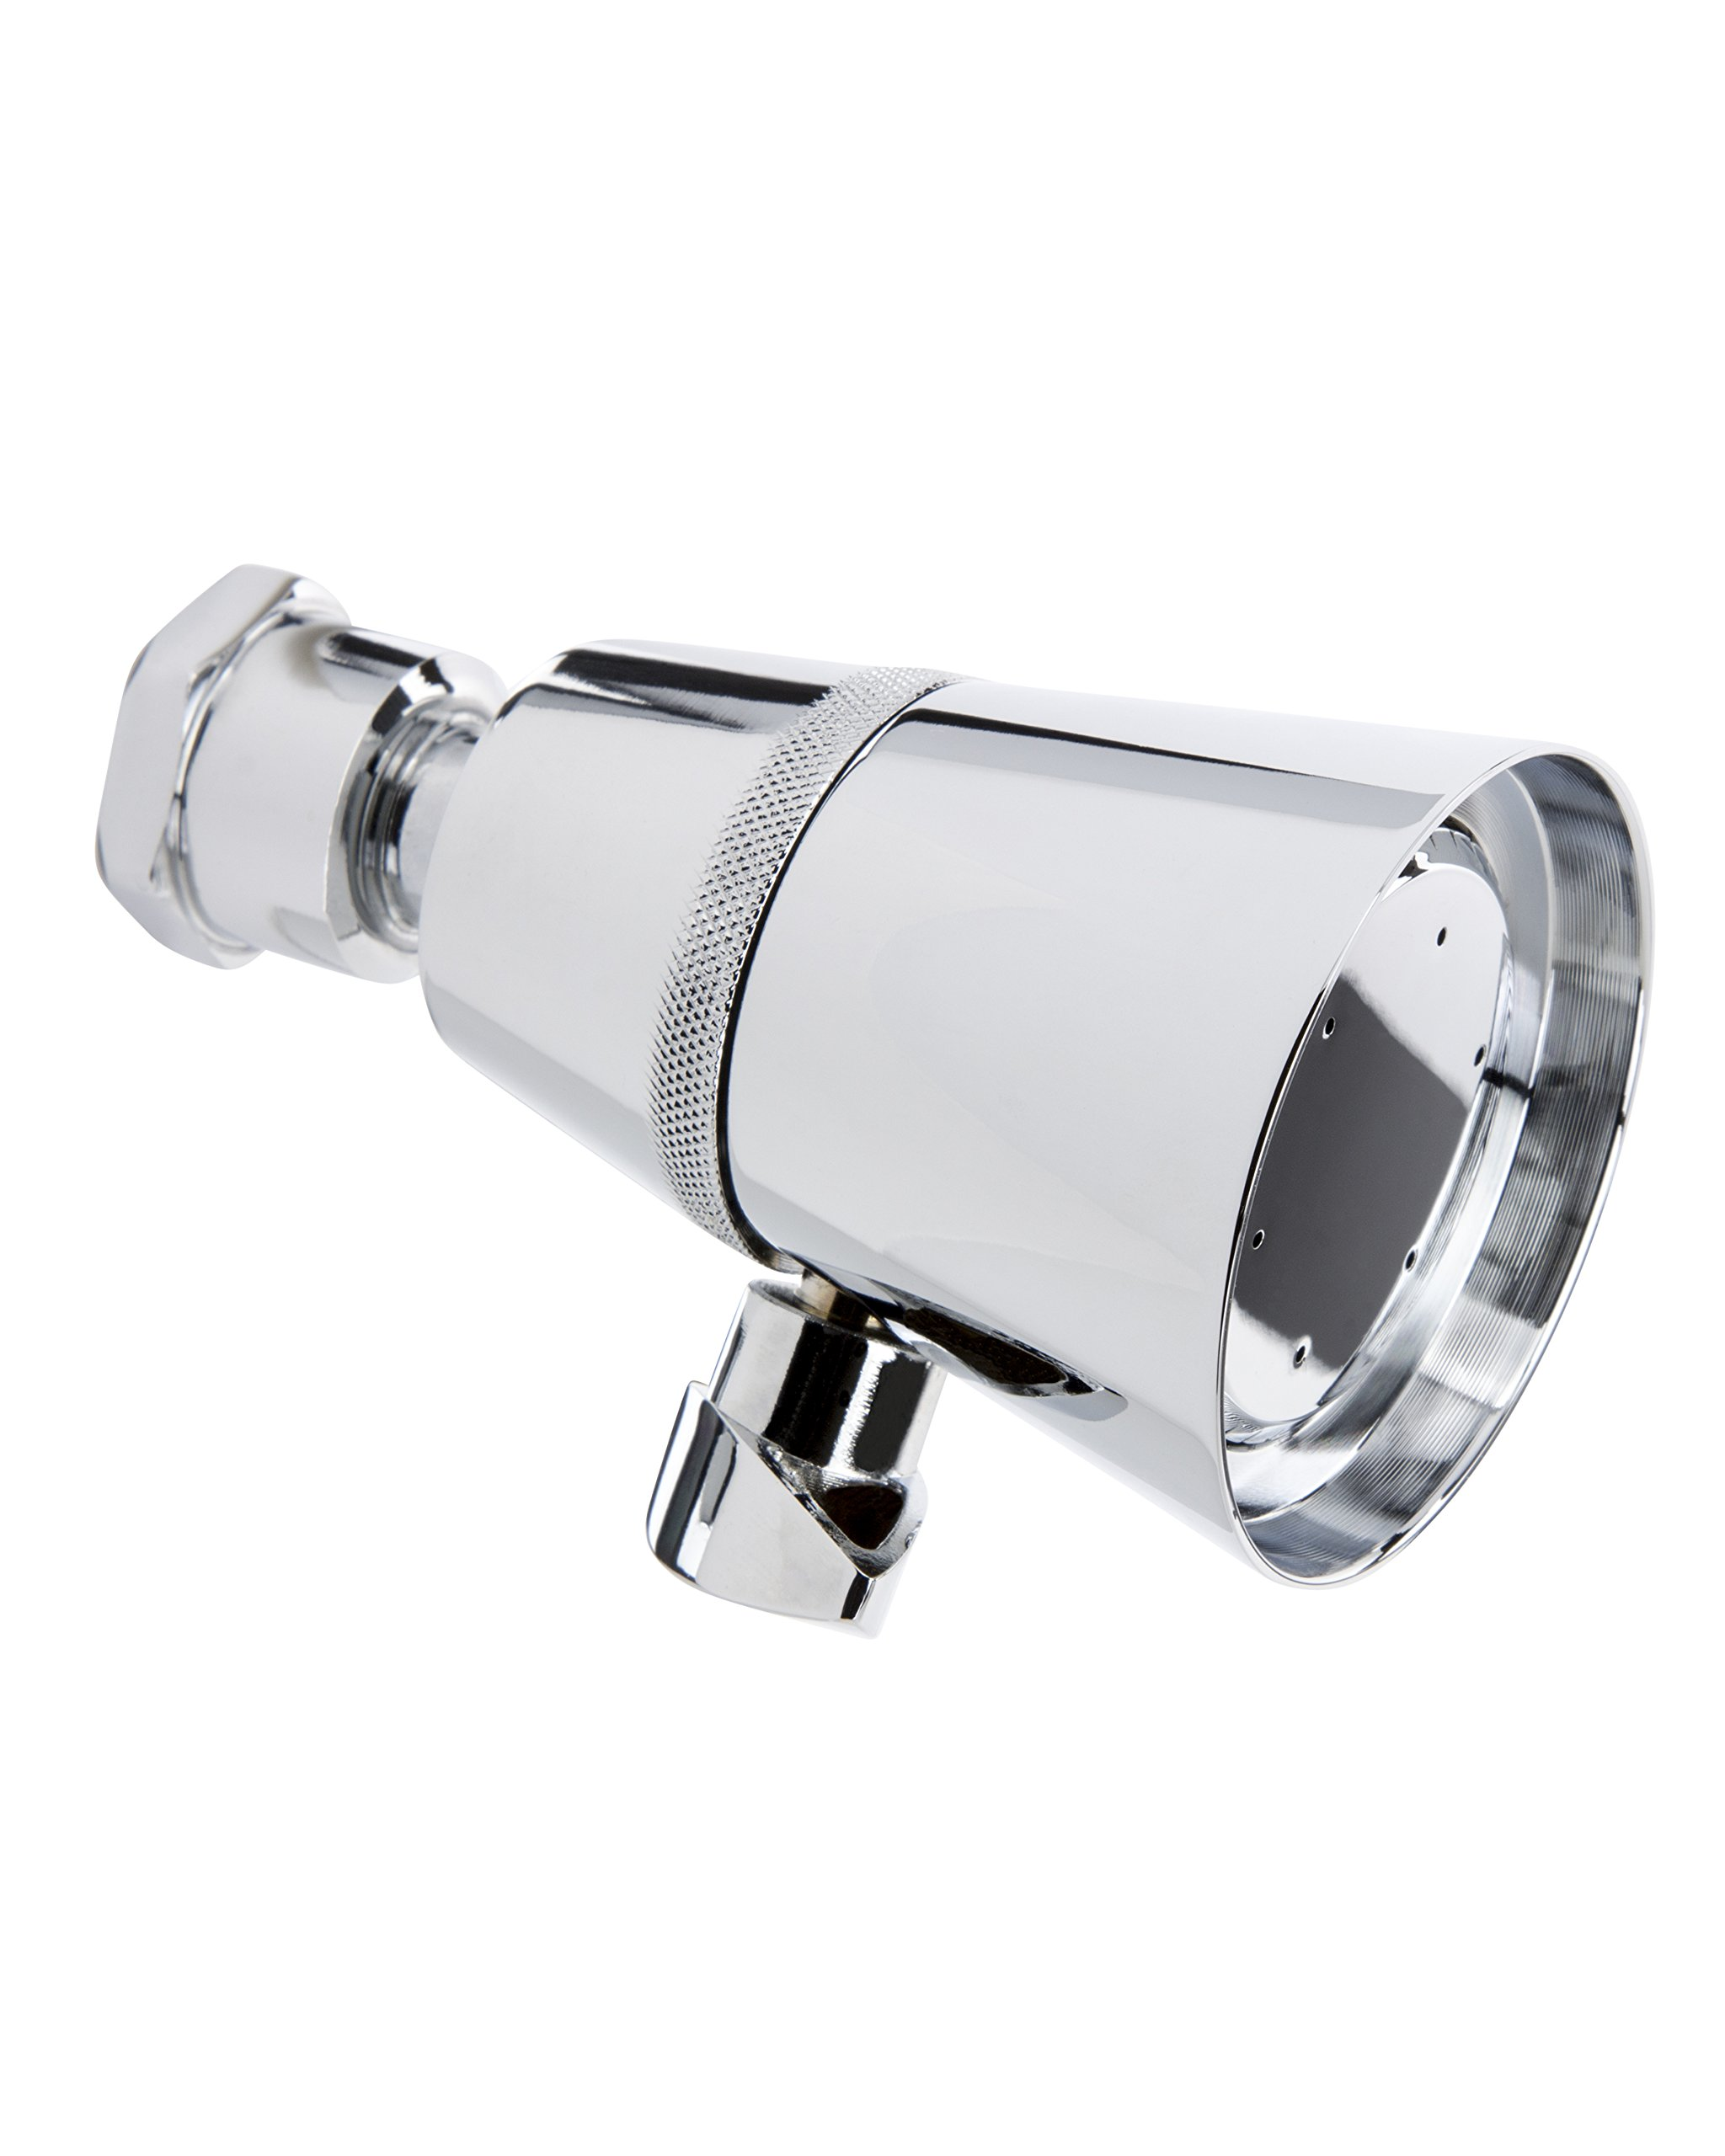 Keeney K706CP Stylewise Shower Head with Adjustable Spray, Polished Chrome Finish